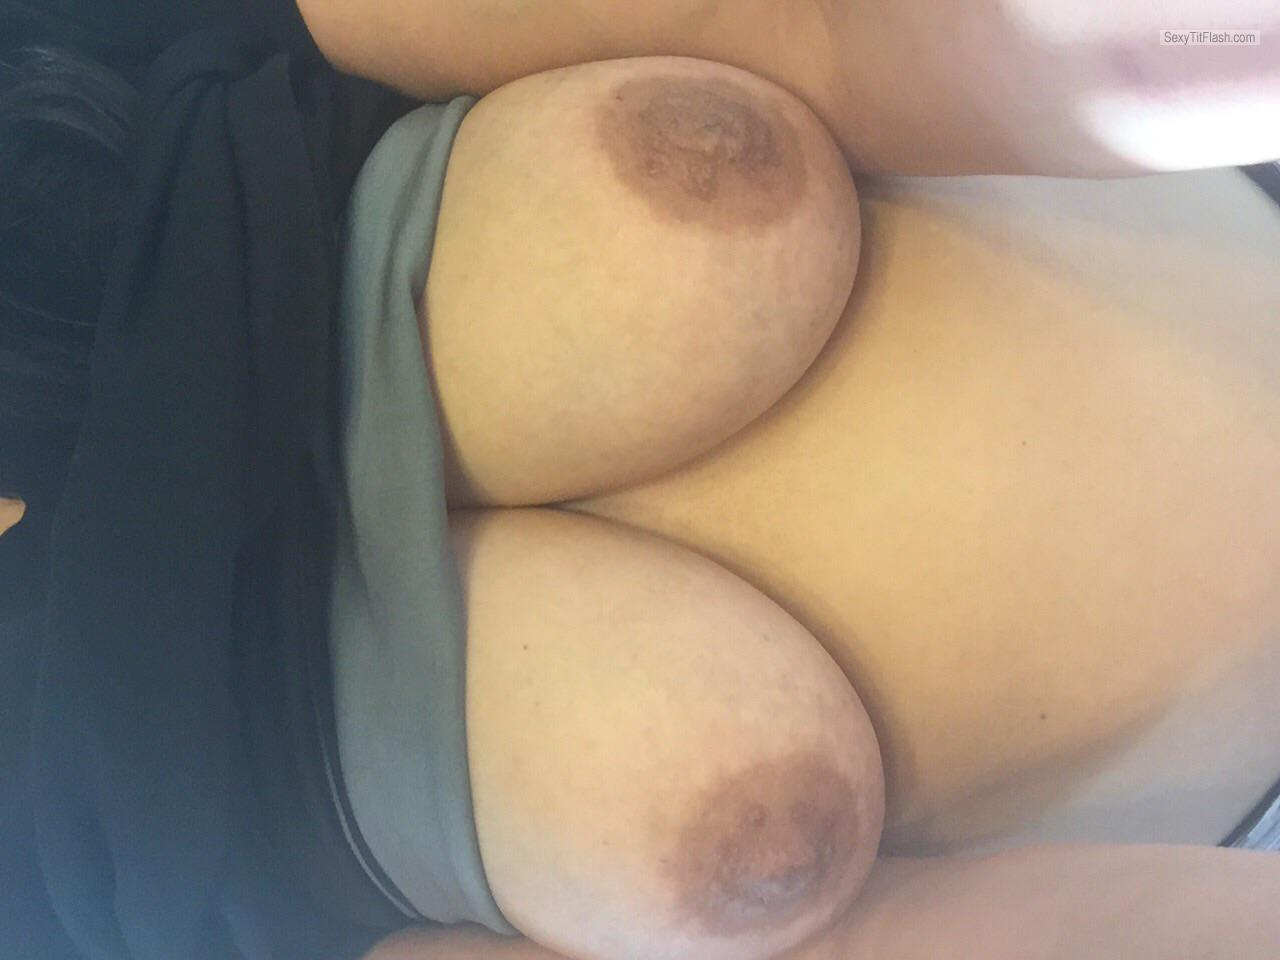 My Big Tits Selfie by Mallorygirl